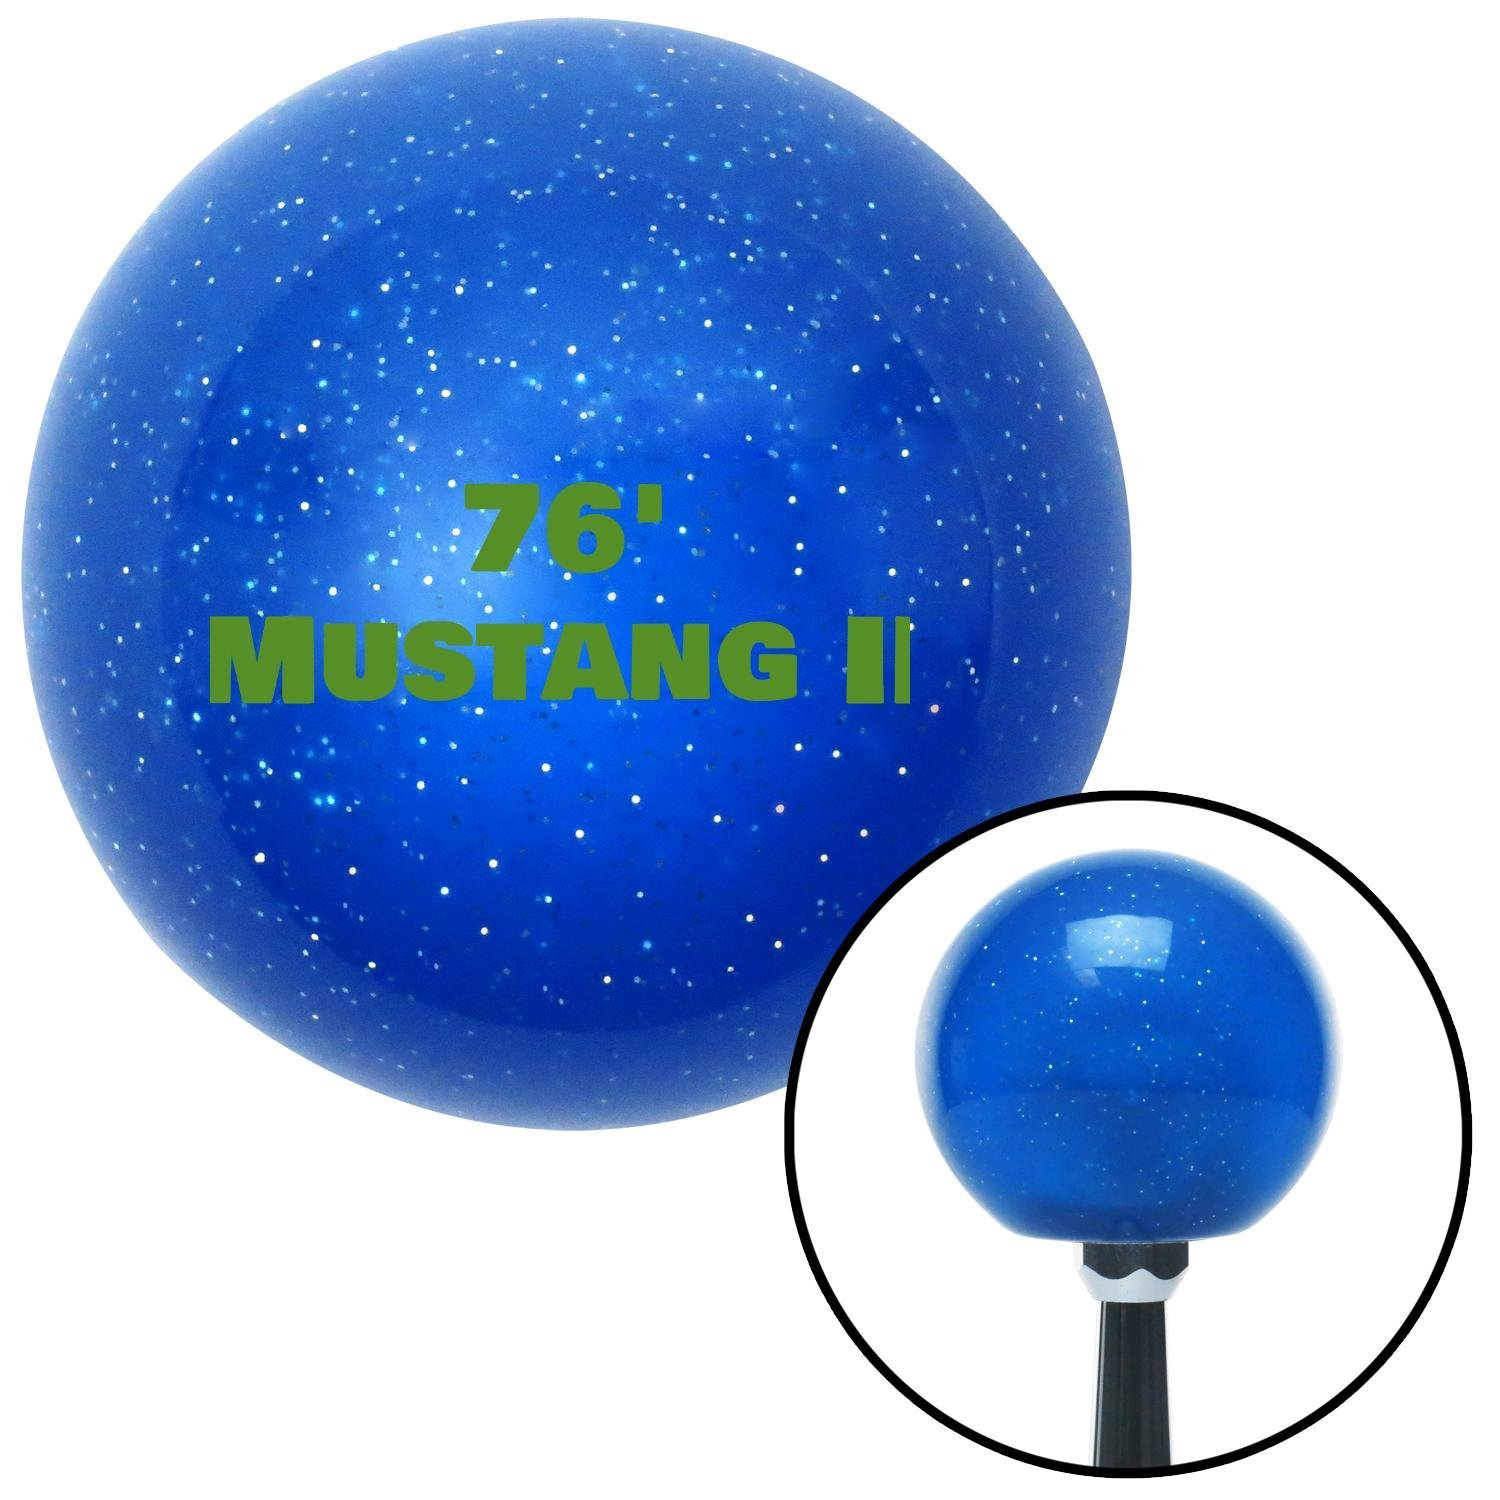 Green 76 Mustang II American Shifter 139505 Blue Metal Flake Shift Knob with M16 x 1.5 Insert